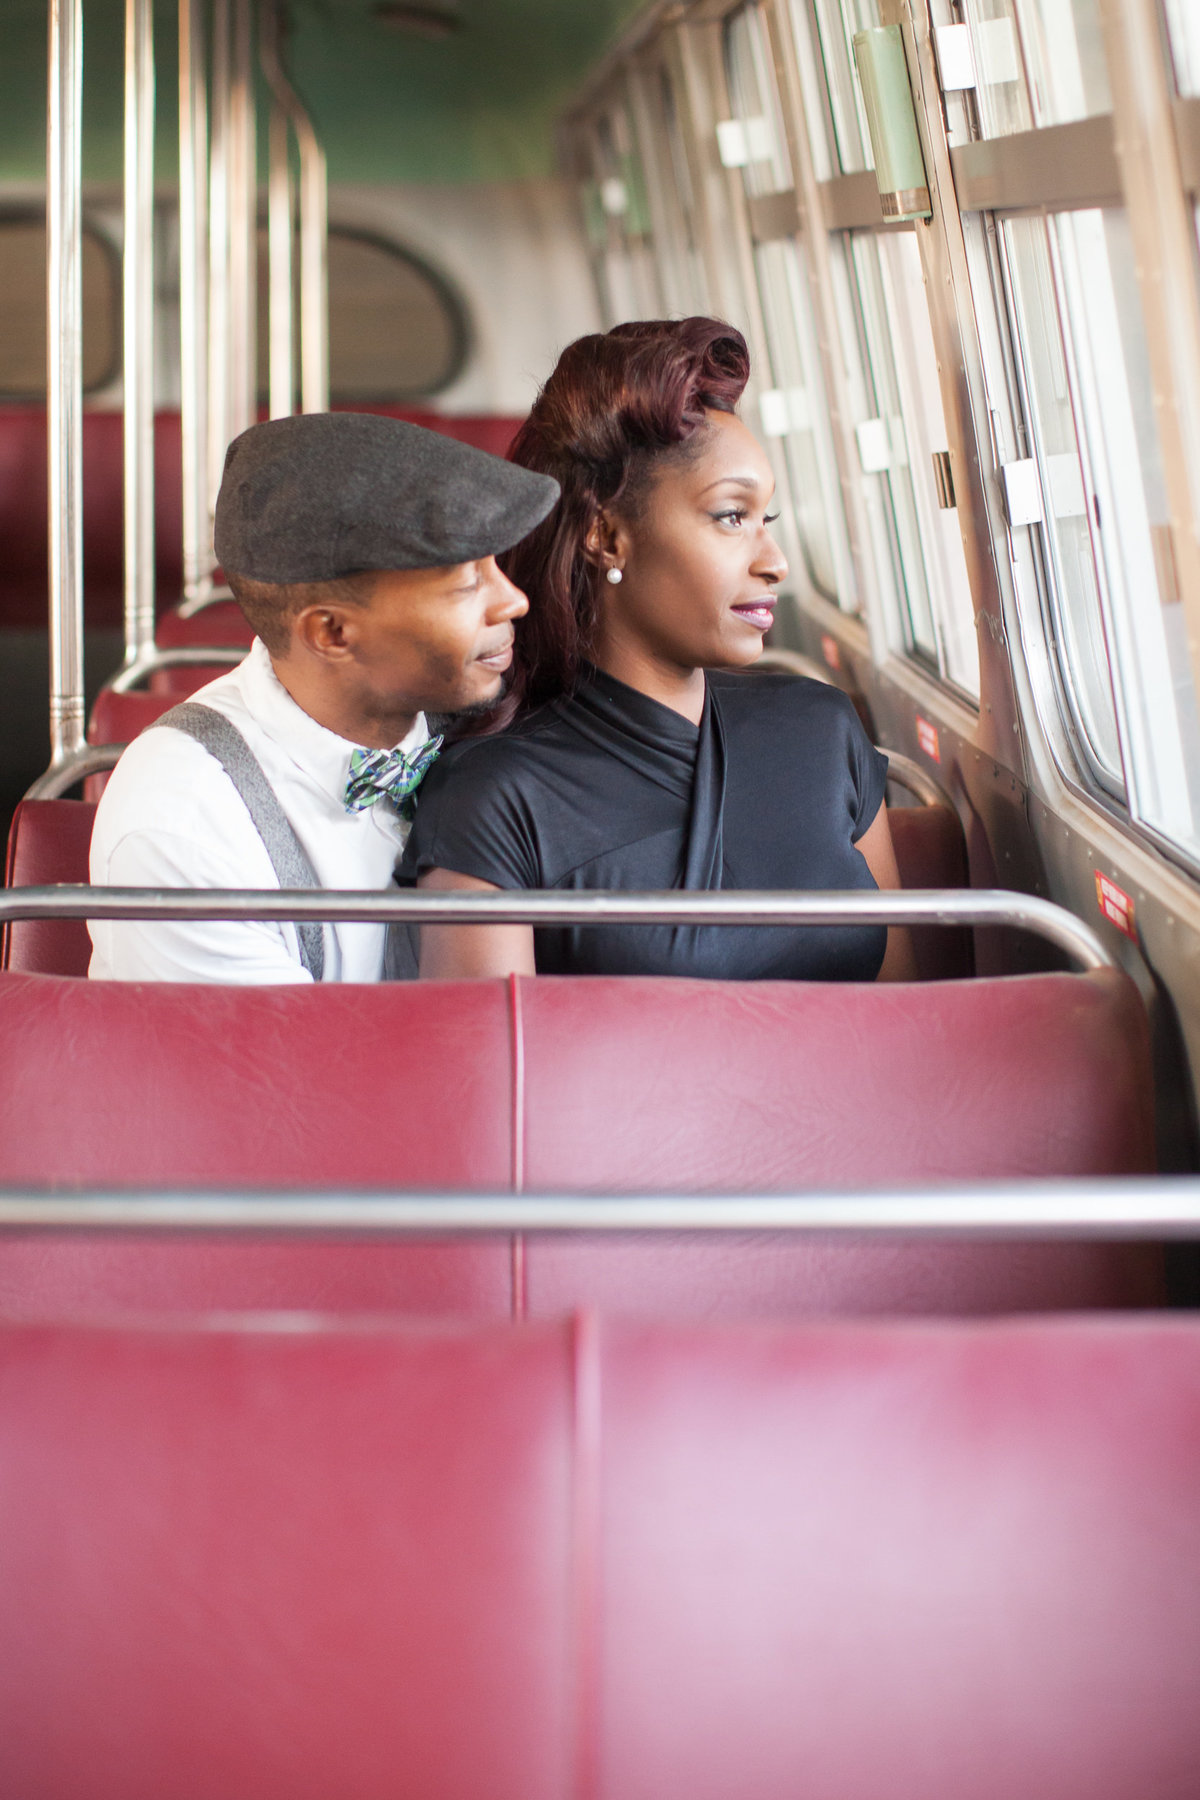 Engagement Session on a bus